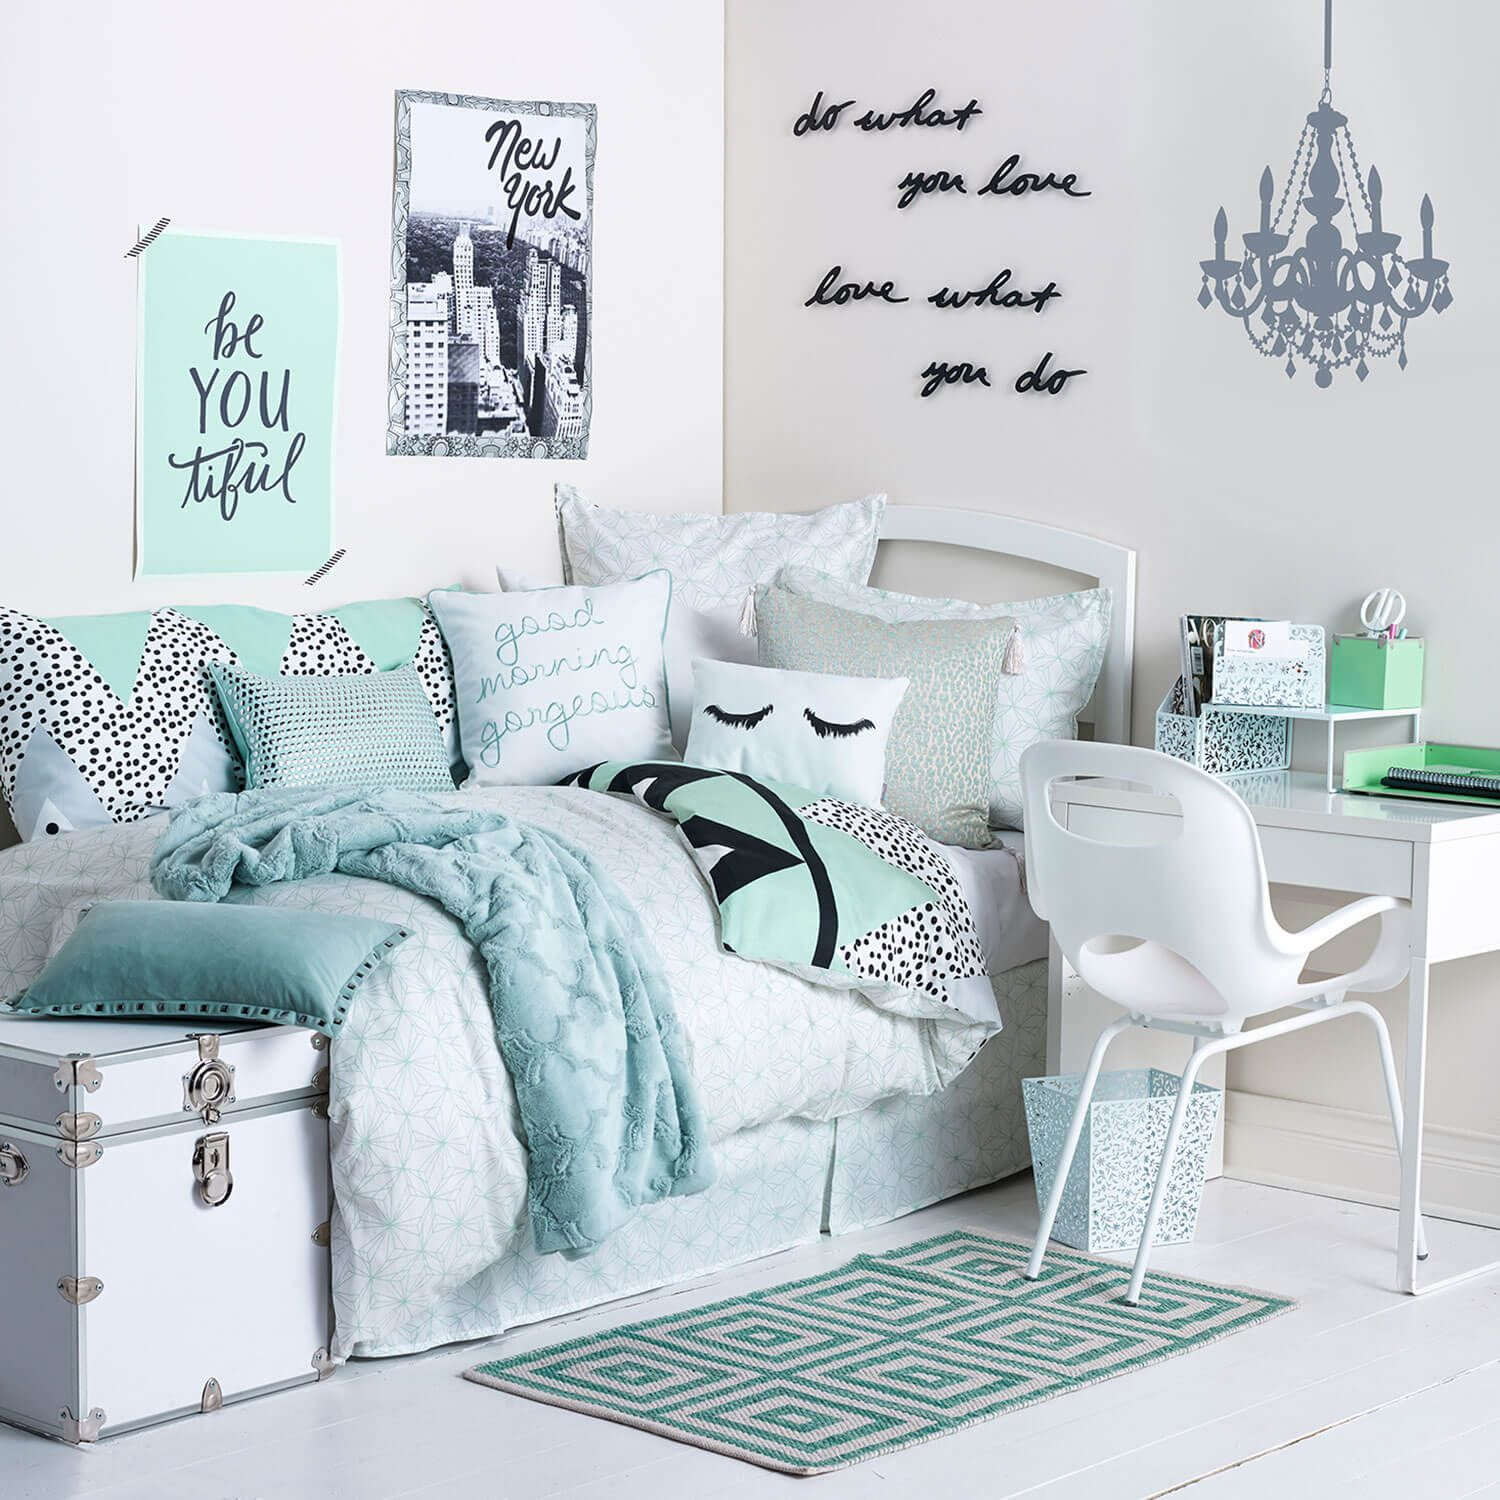 dormify rooms dorm room ideas dorm room collections dormify - Teen Girl Bedroom Ideas